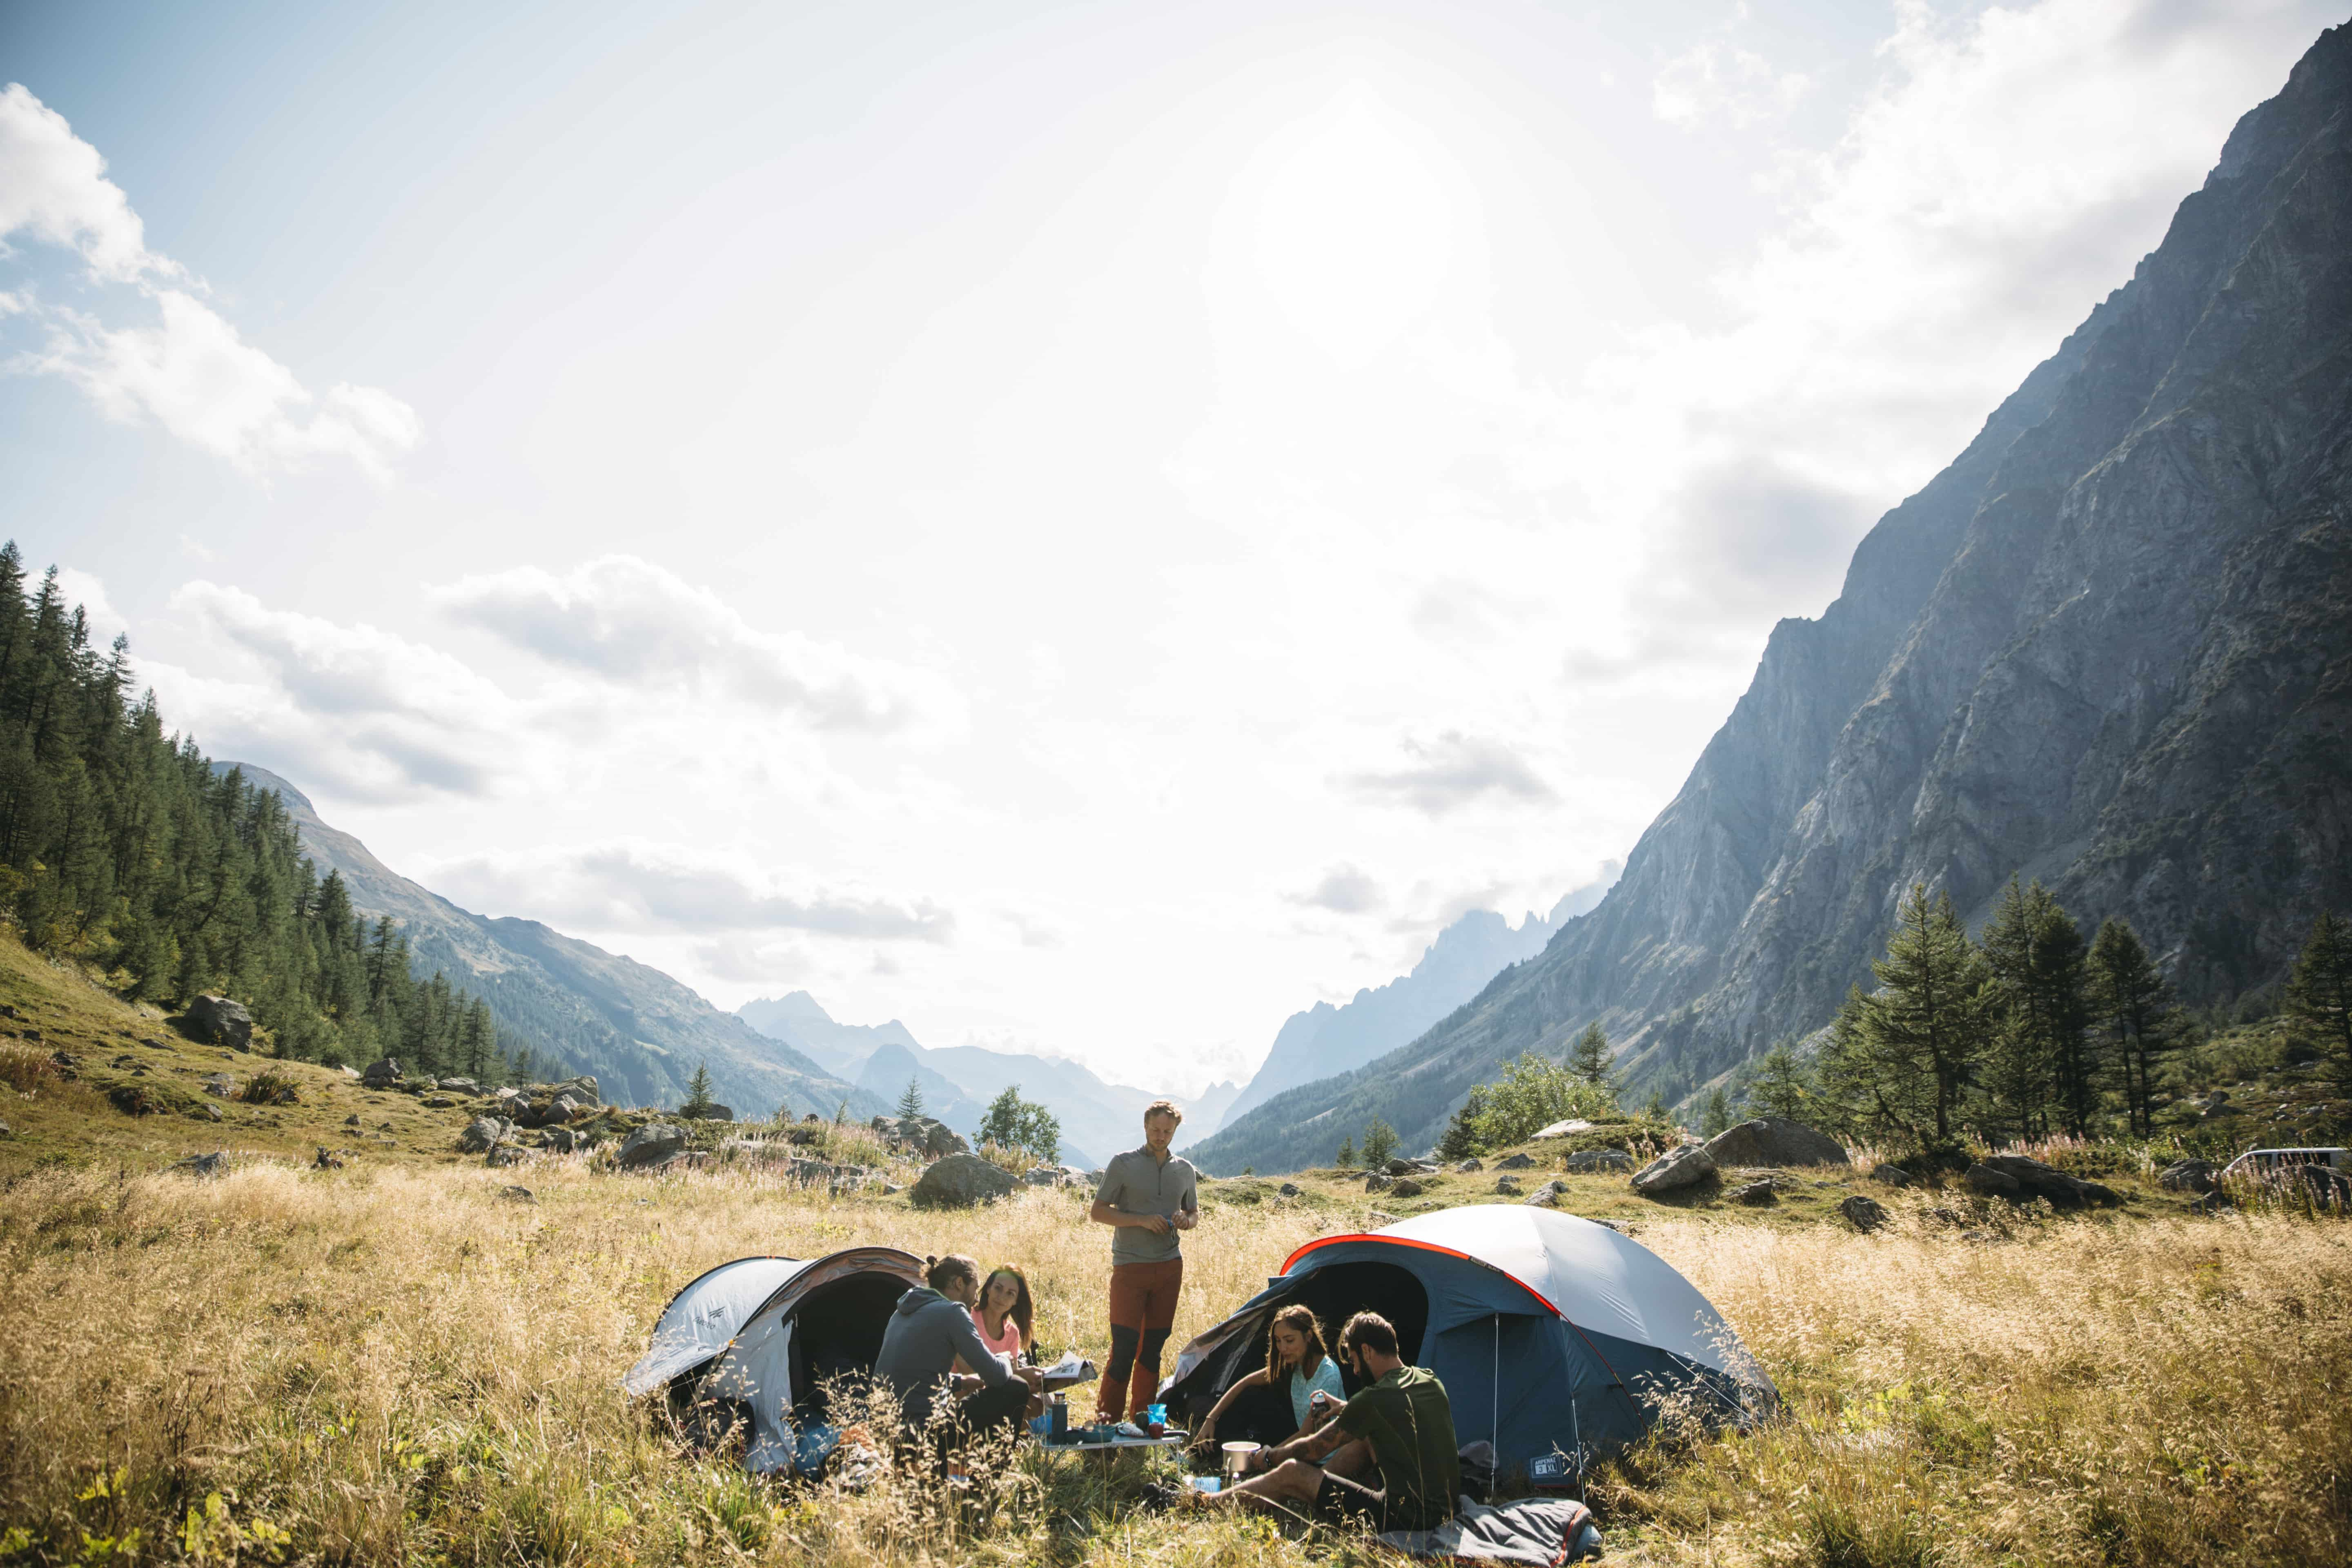 Know Your Gear - DIY Overnight Hiking & Camping Gear